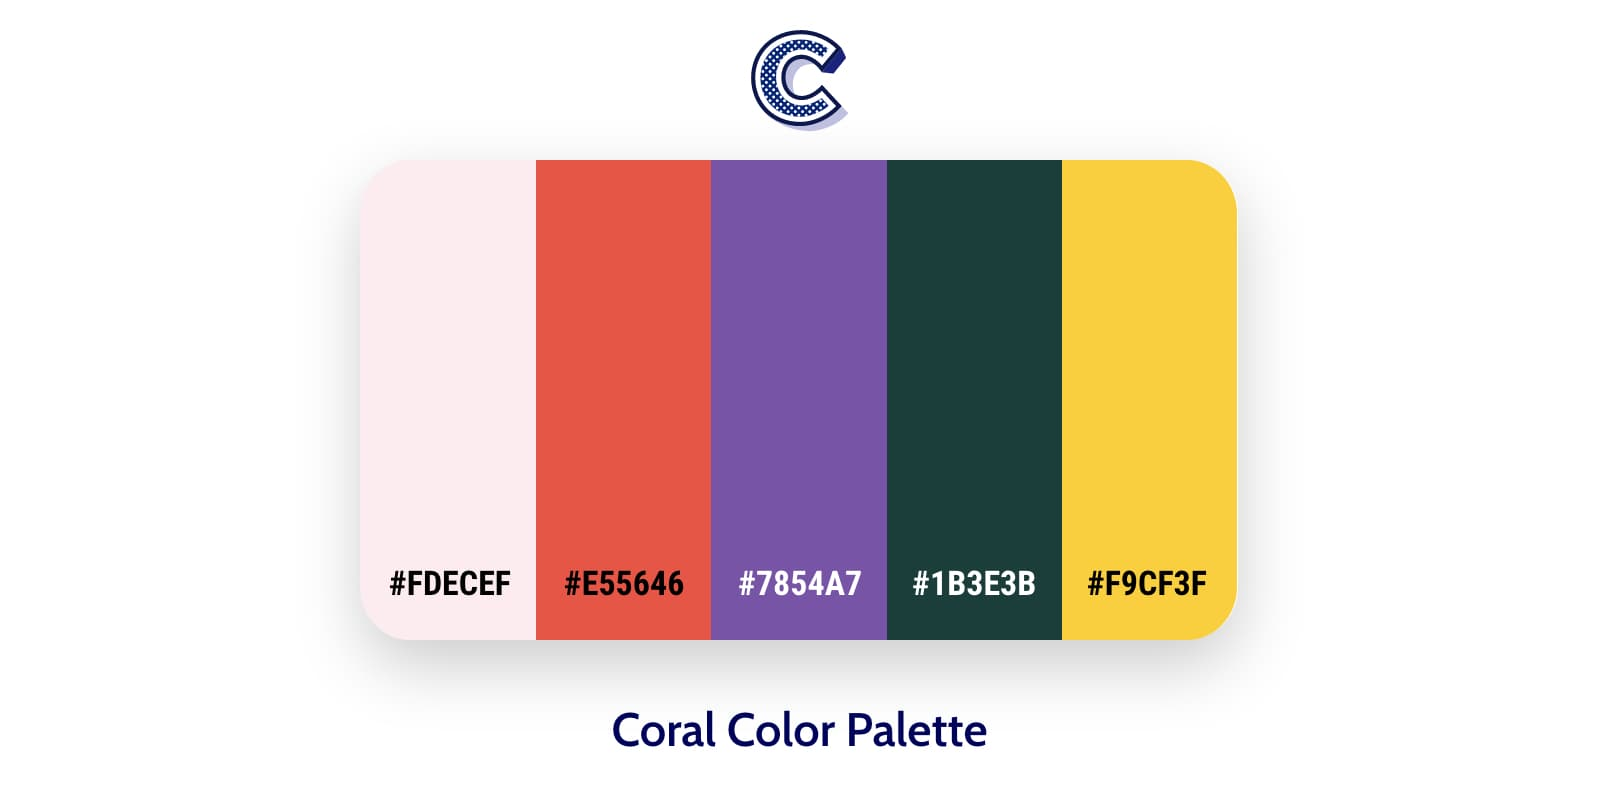 the featured image of coral color palette